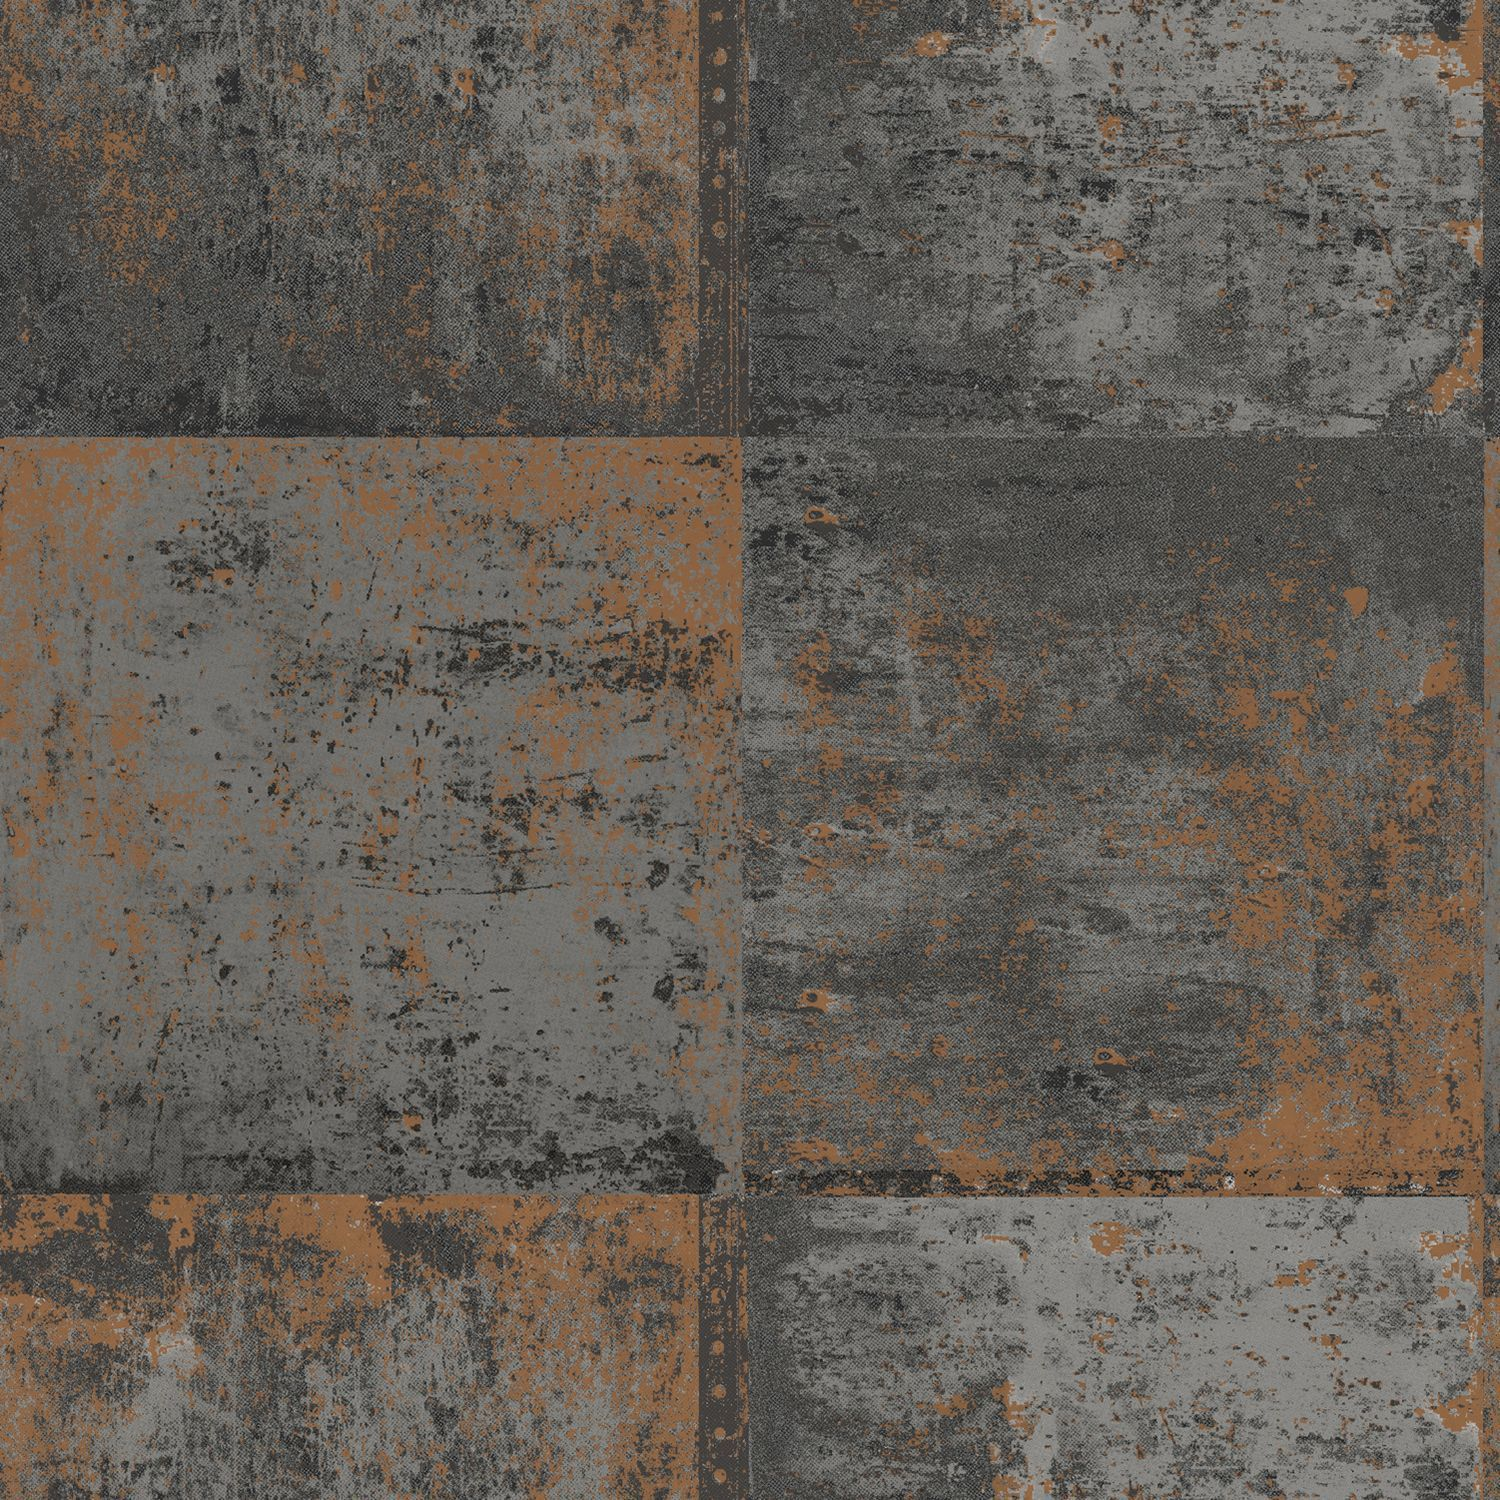 Black Copper Distressed Metal Panel Wallpaper Bq For All Your Home And Garden Supplies And Advice On All The Latest Diy Trends